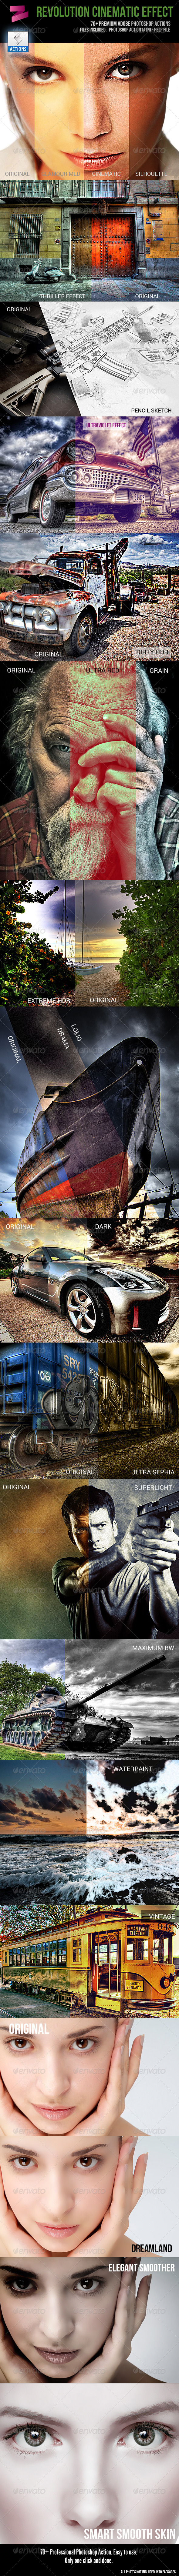 GraphicRiver Revolusion Cinematic Effects-70& Photoshop Effect 5573320